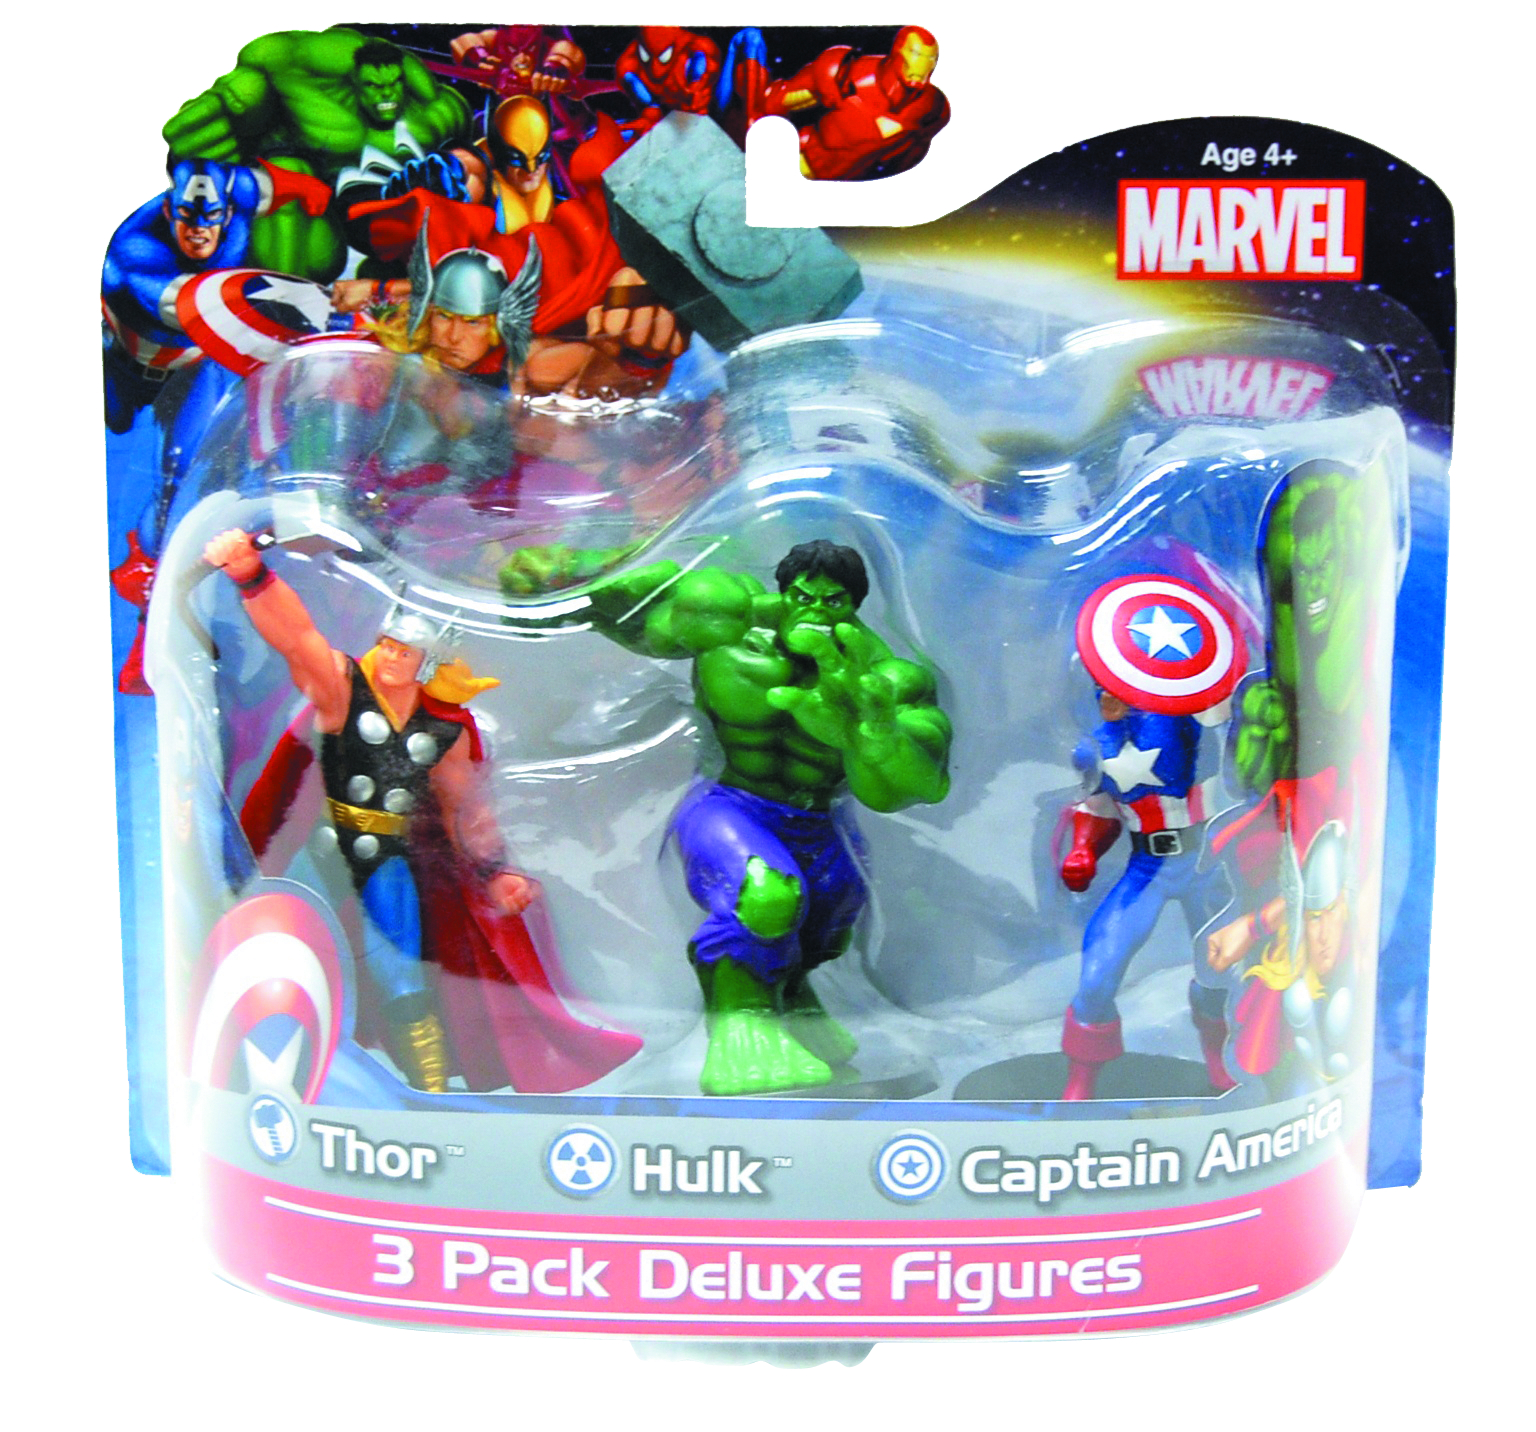 MARVEL CLASSIC 3 PACK 4 INCH PVC FIGURINE ASST